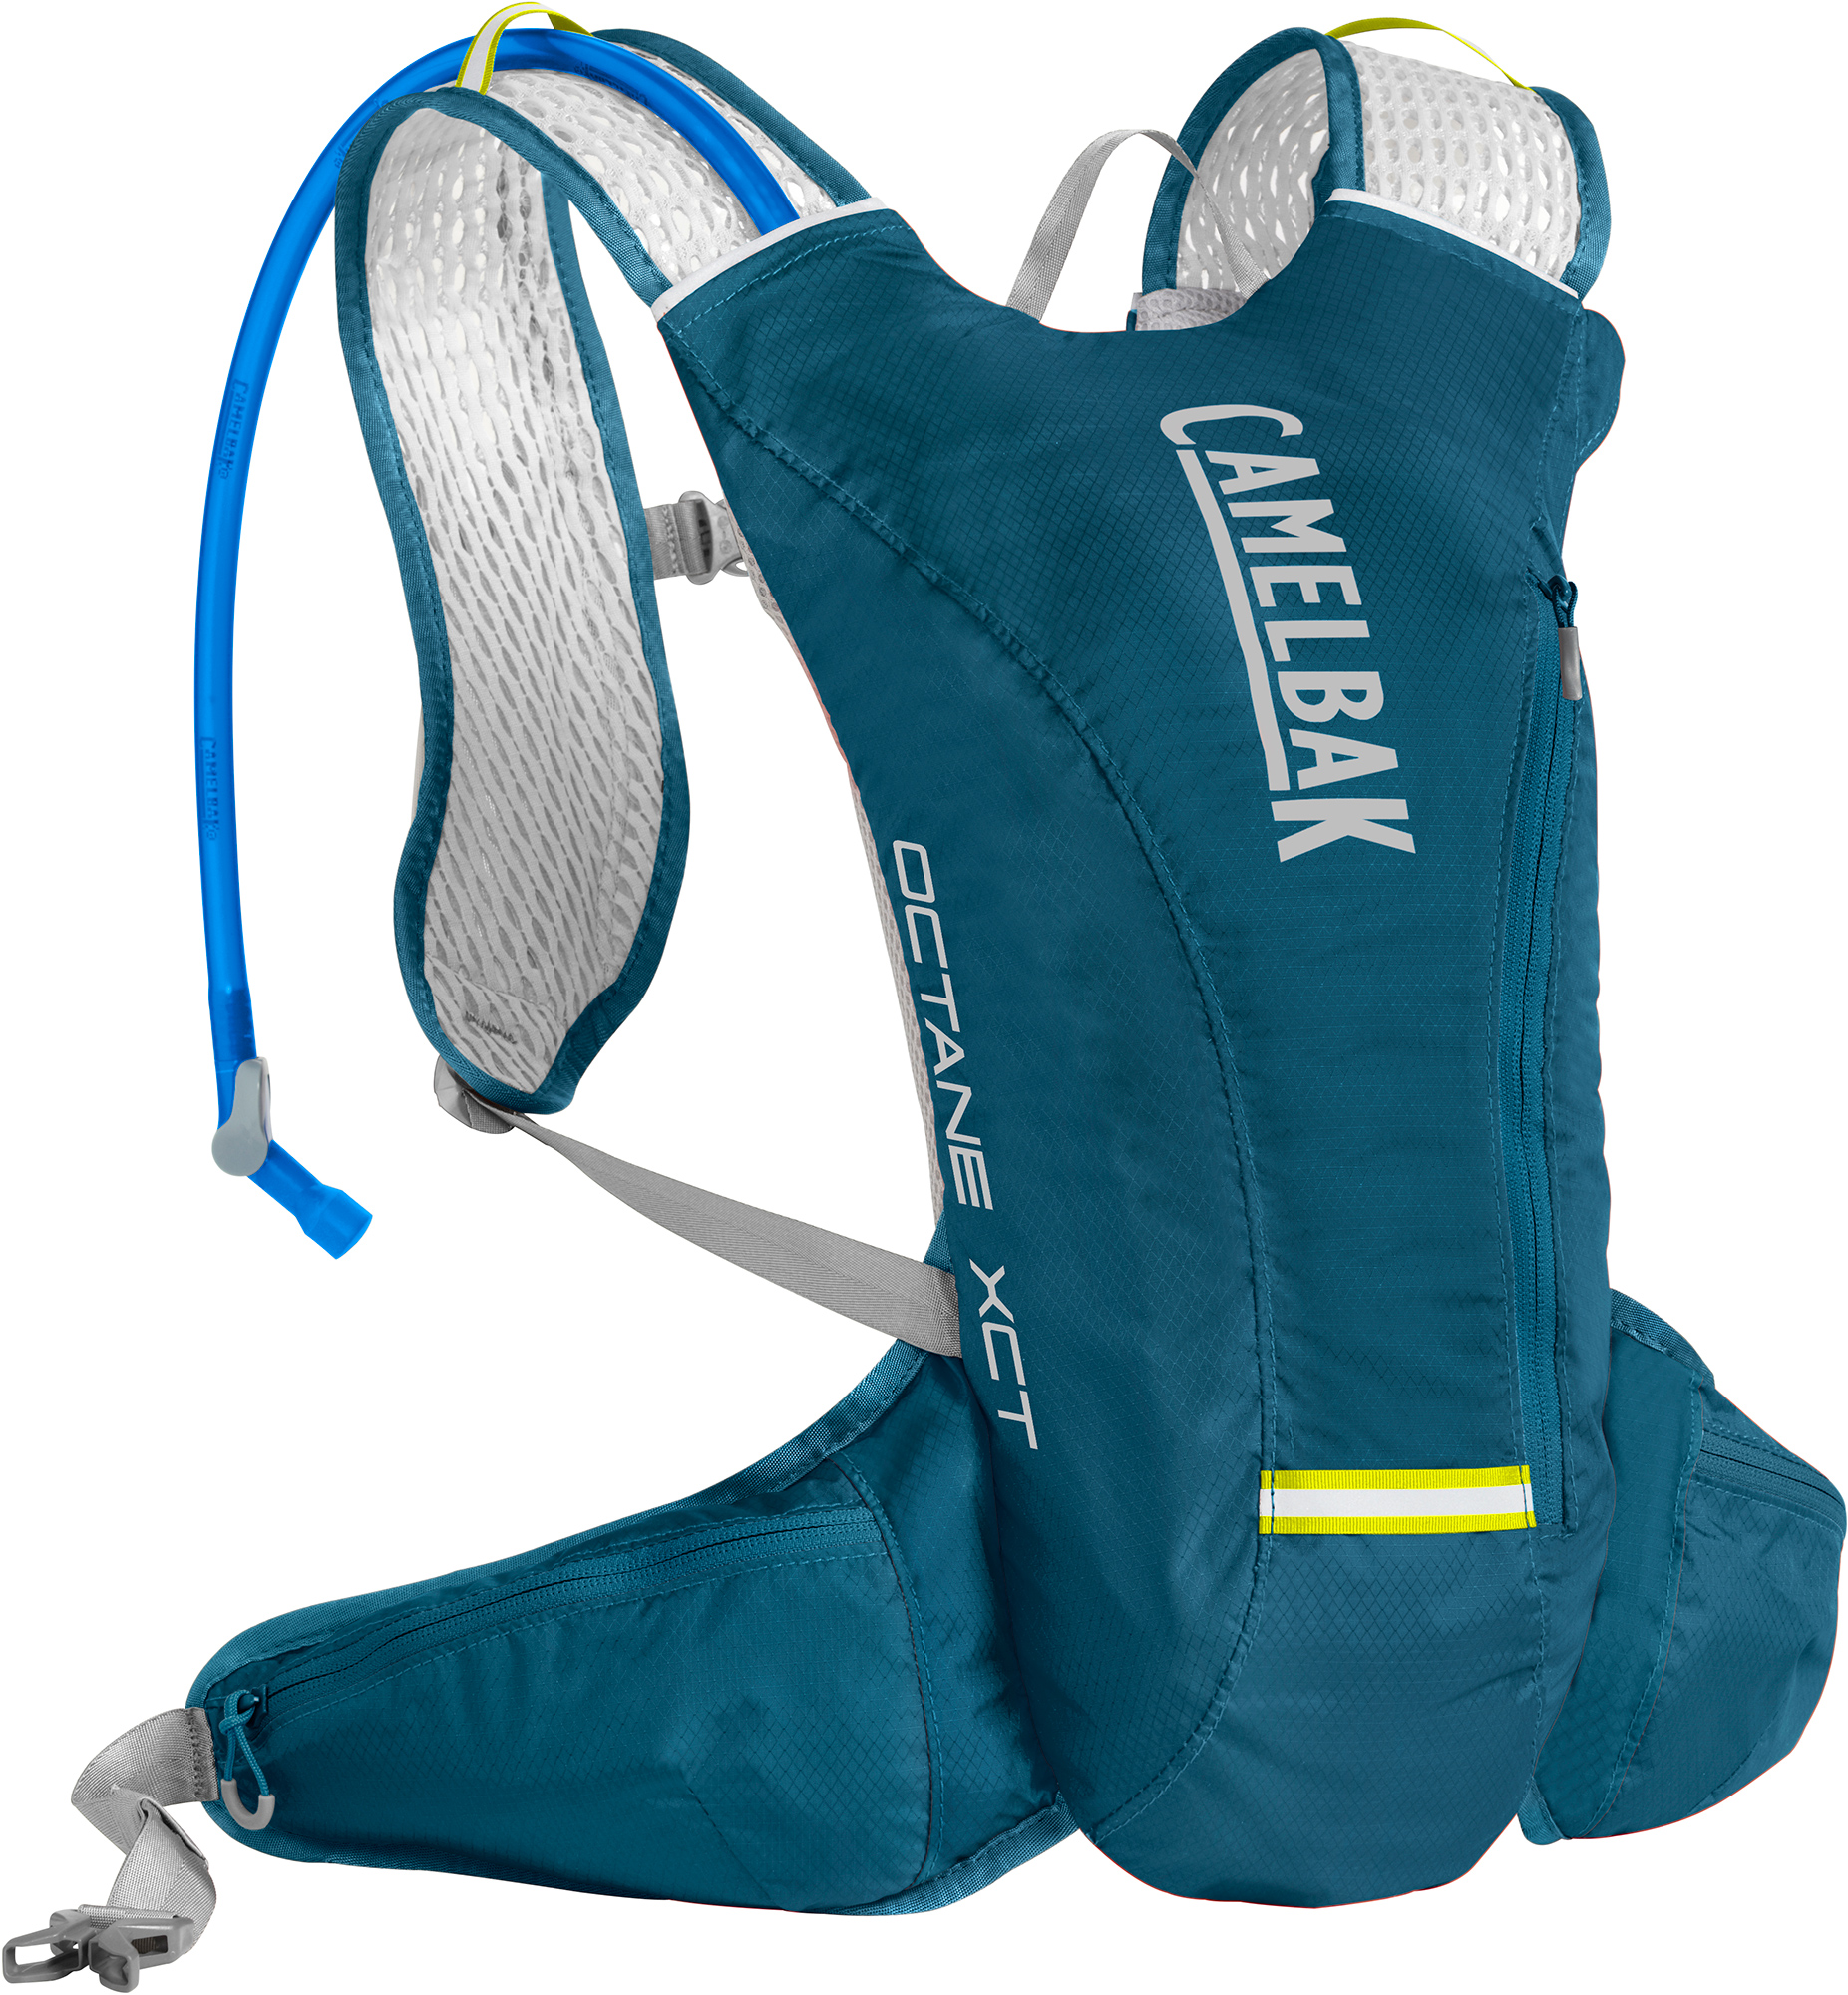 camelbak hydration pack